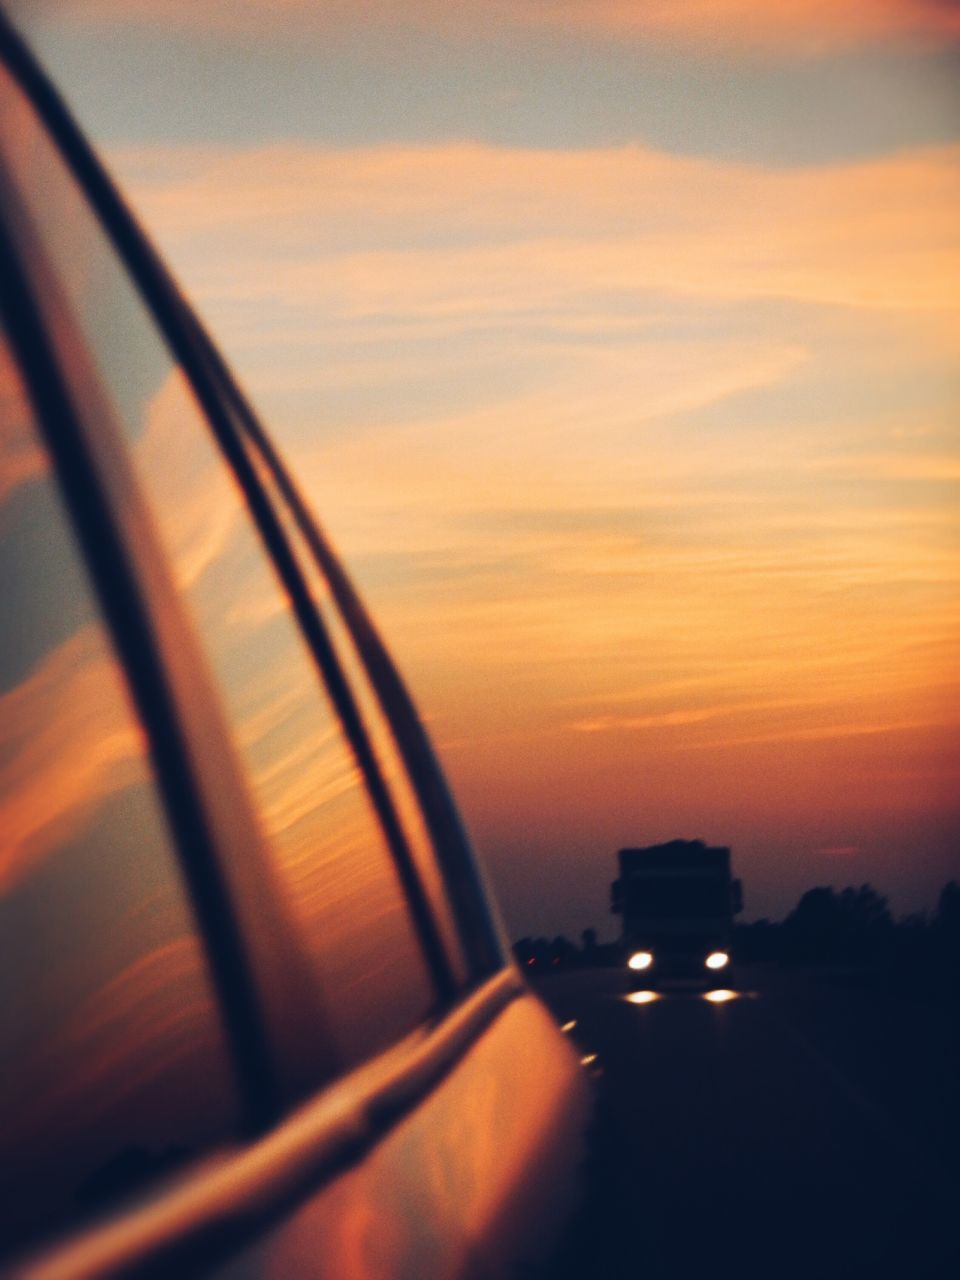 transportation, car, sunset, mode of transport, land vehicle, sky, no people, road, side-view mirror, travel, journey, nature, scenics, outdoors, close-up, day